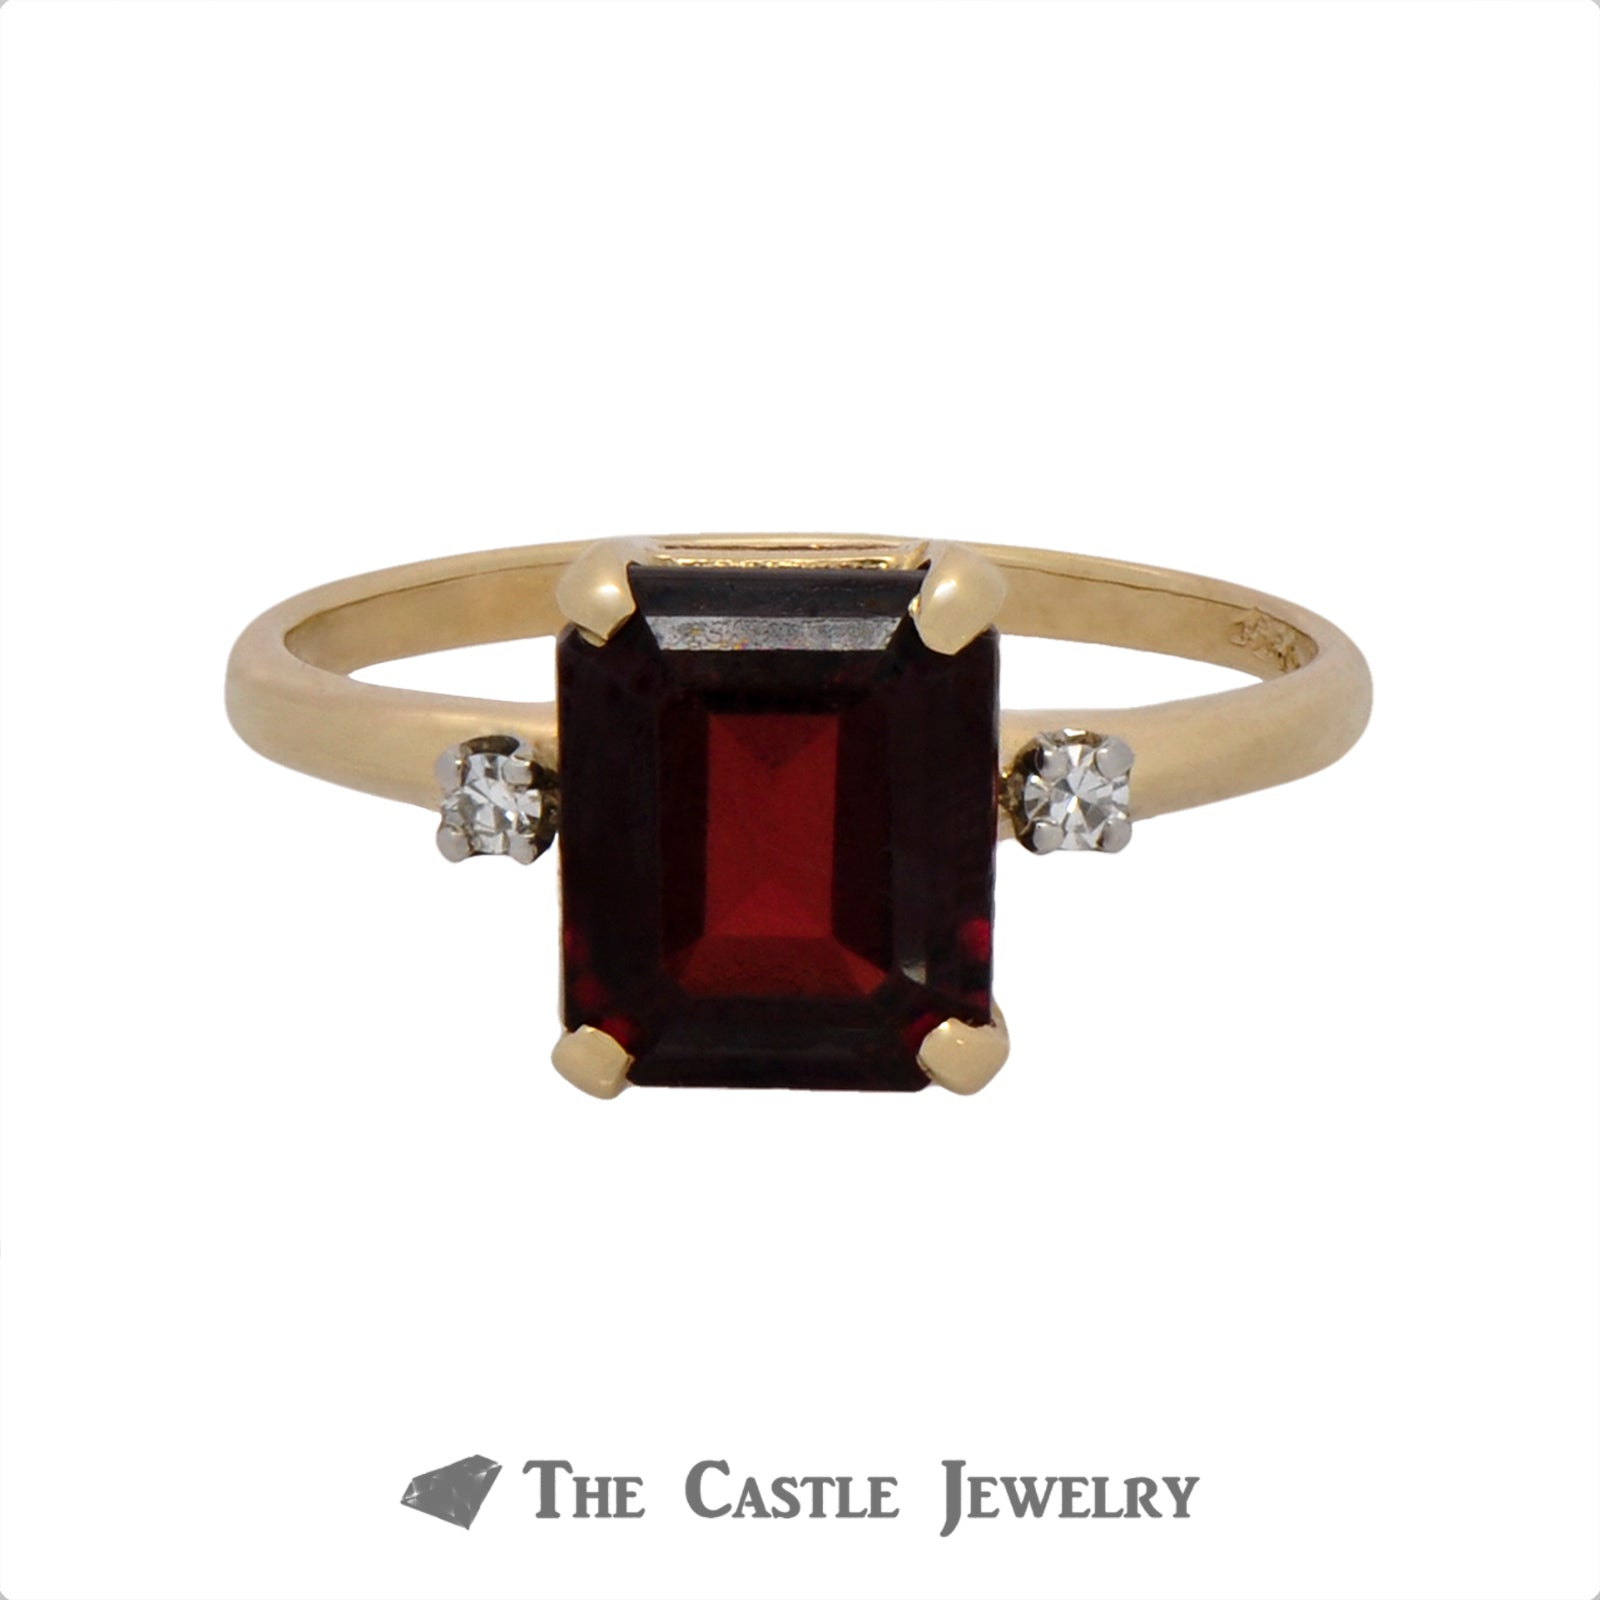 Emerald Cut Garnet Ring with Diamond Accents in 14K Gold